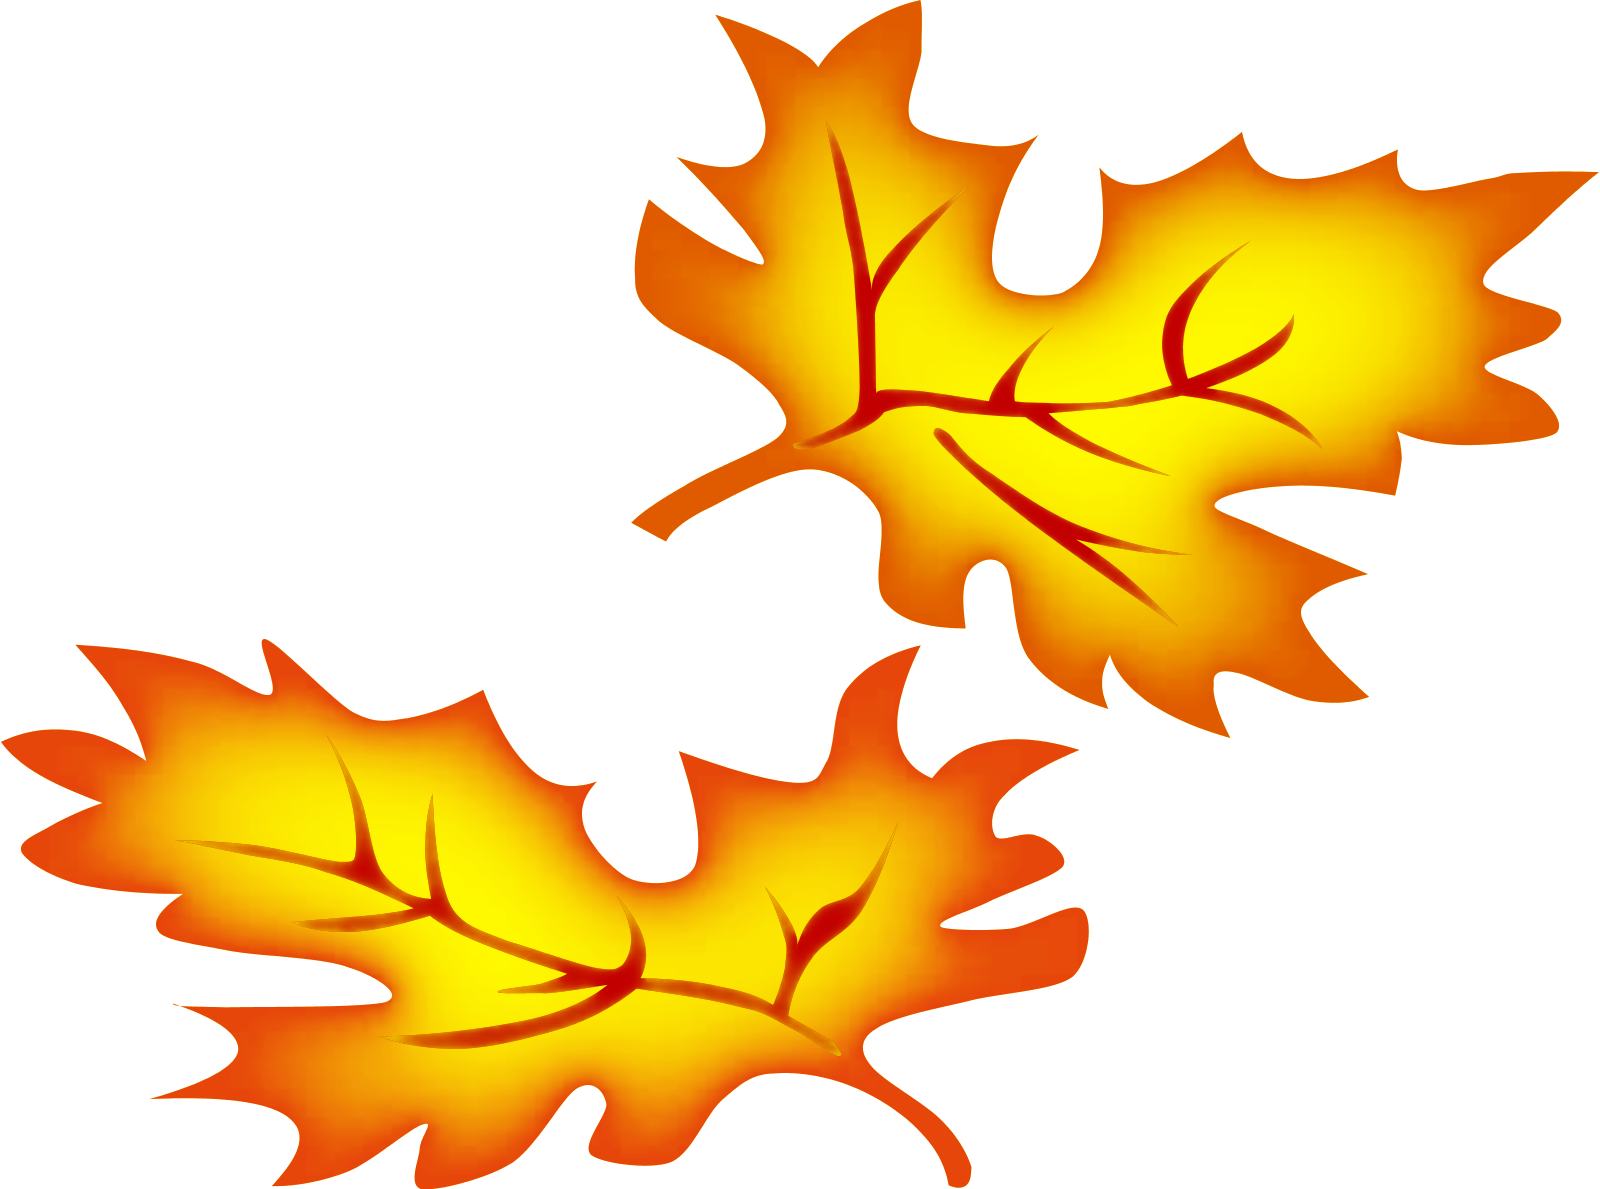 Fall Leaves Images Clip Art - ClipArt Best - Cliparts.co